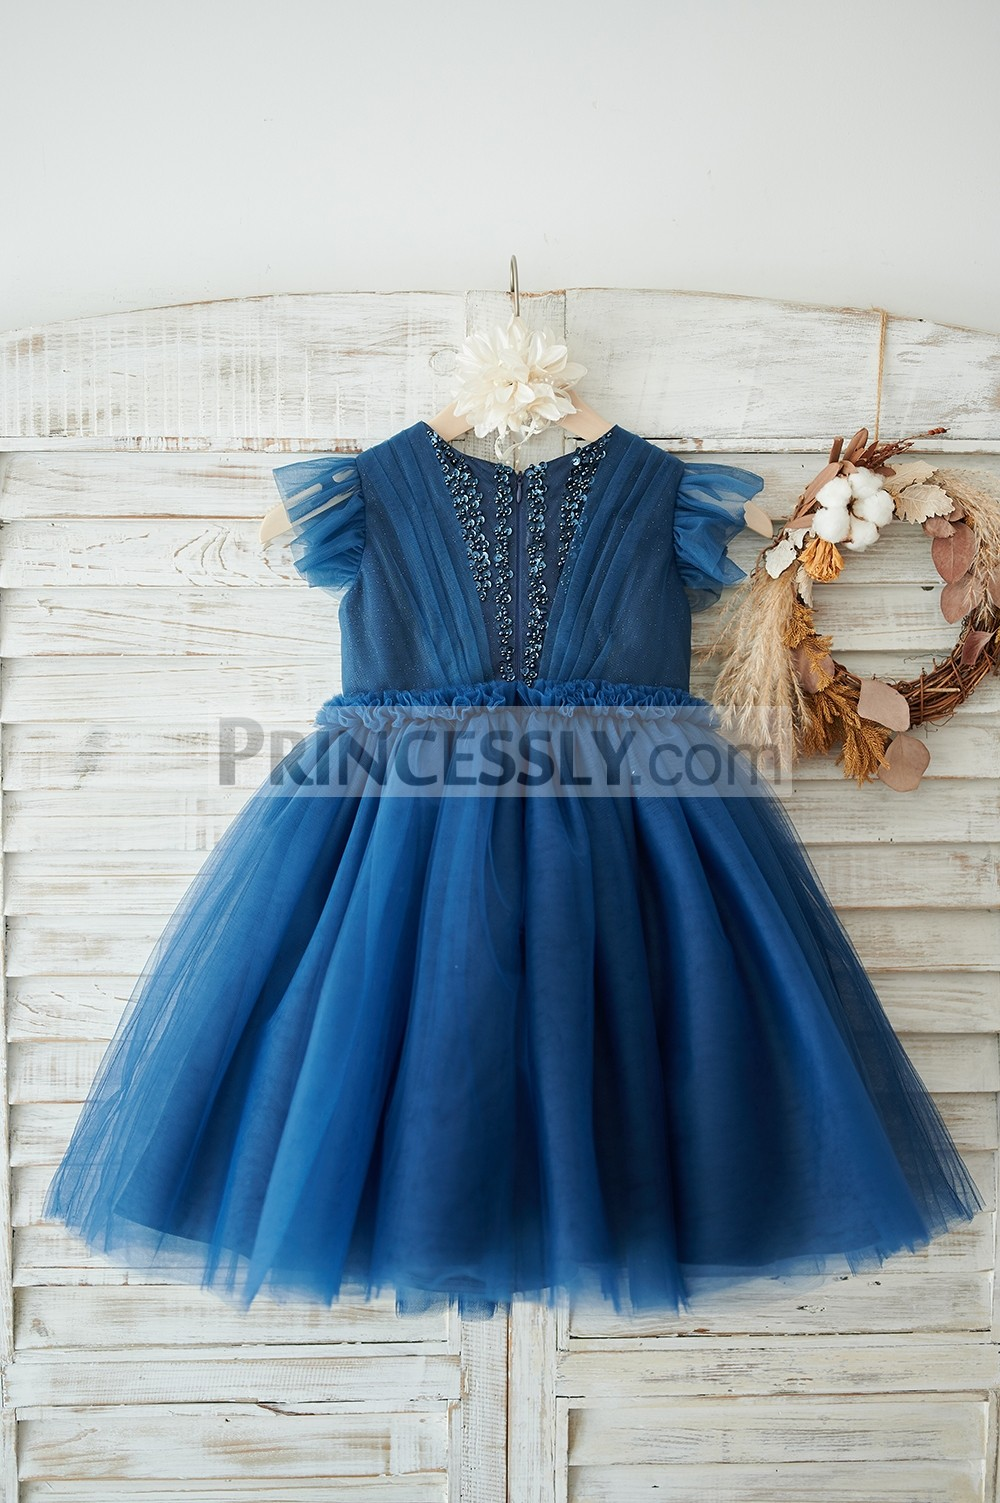 Beaded ruffled cap sleeves navy blue wedding baby girl dress